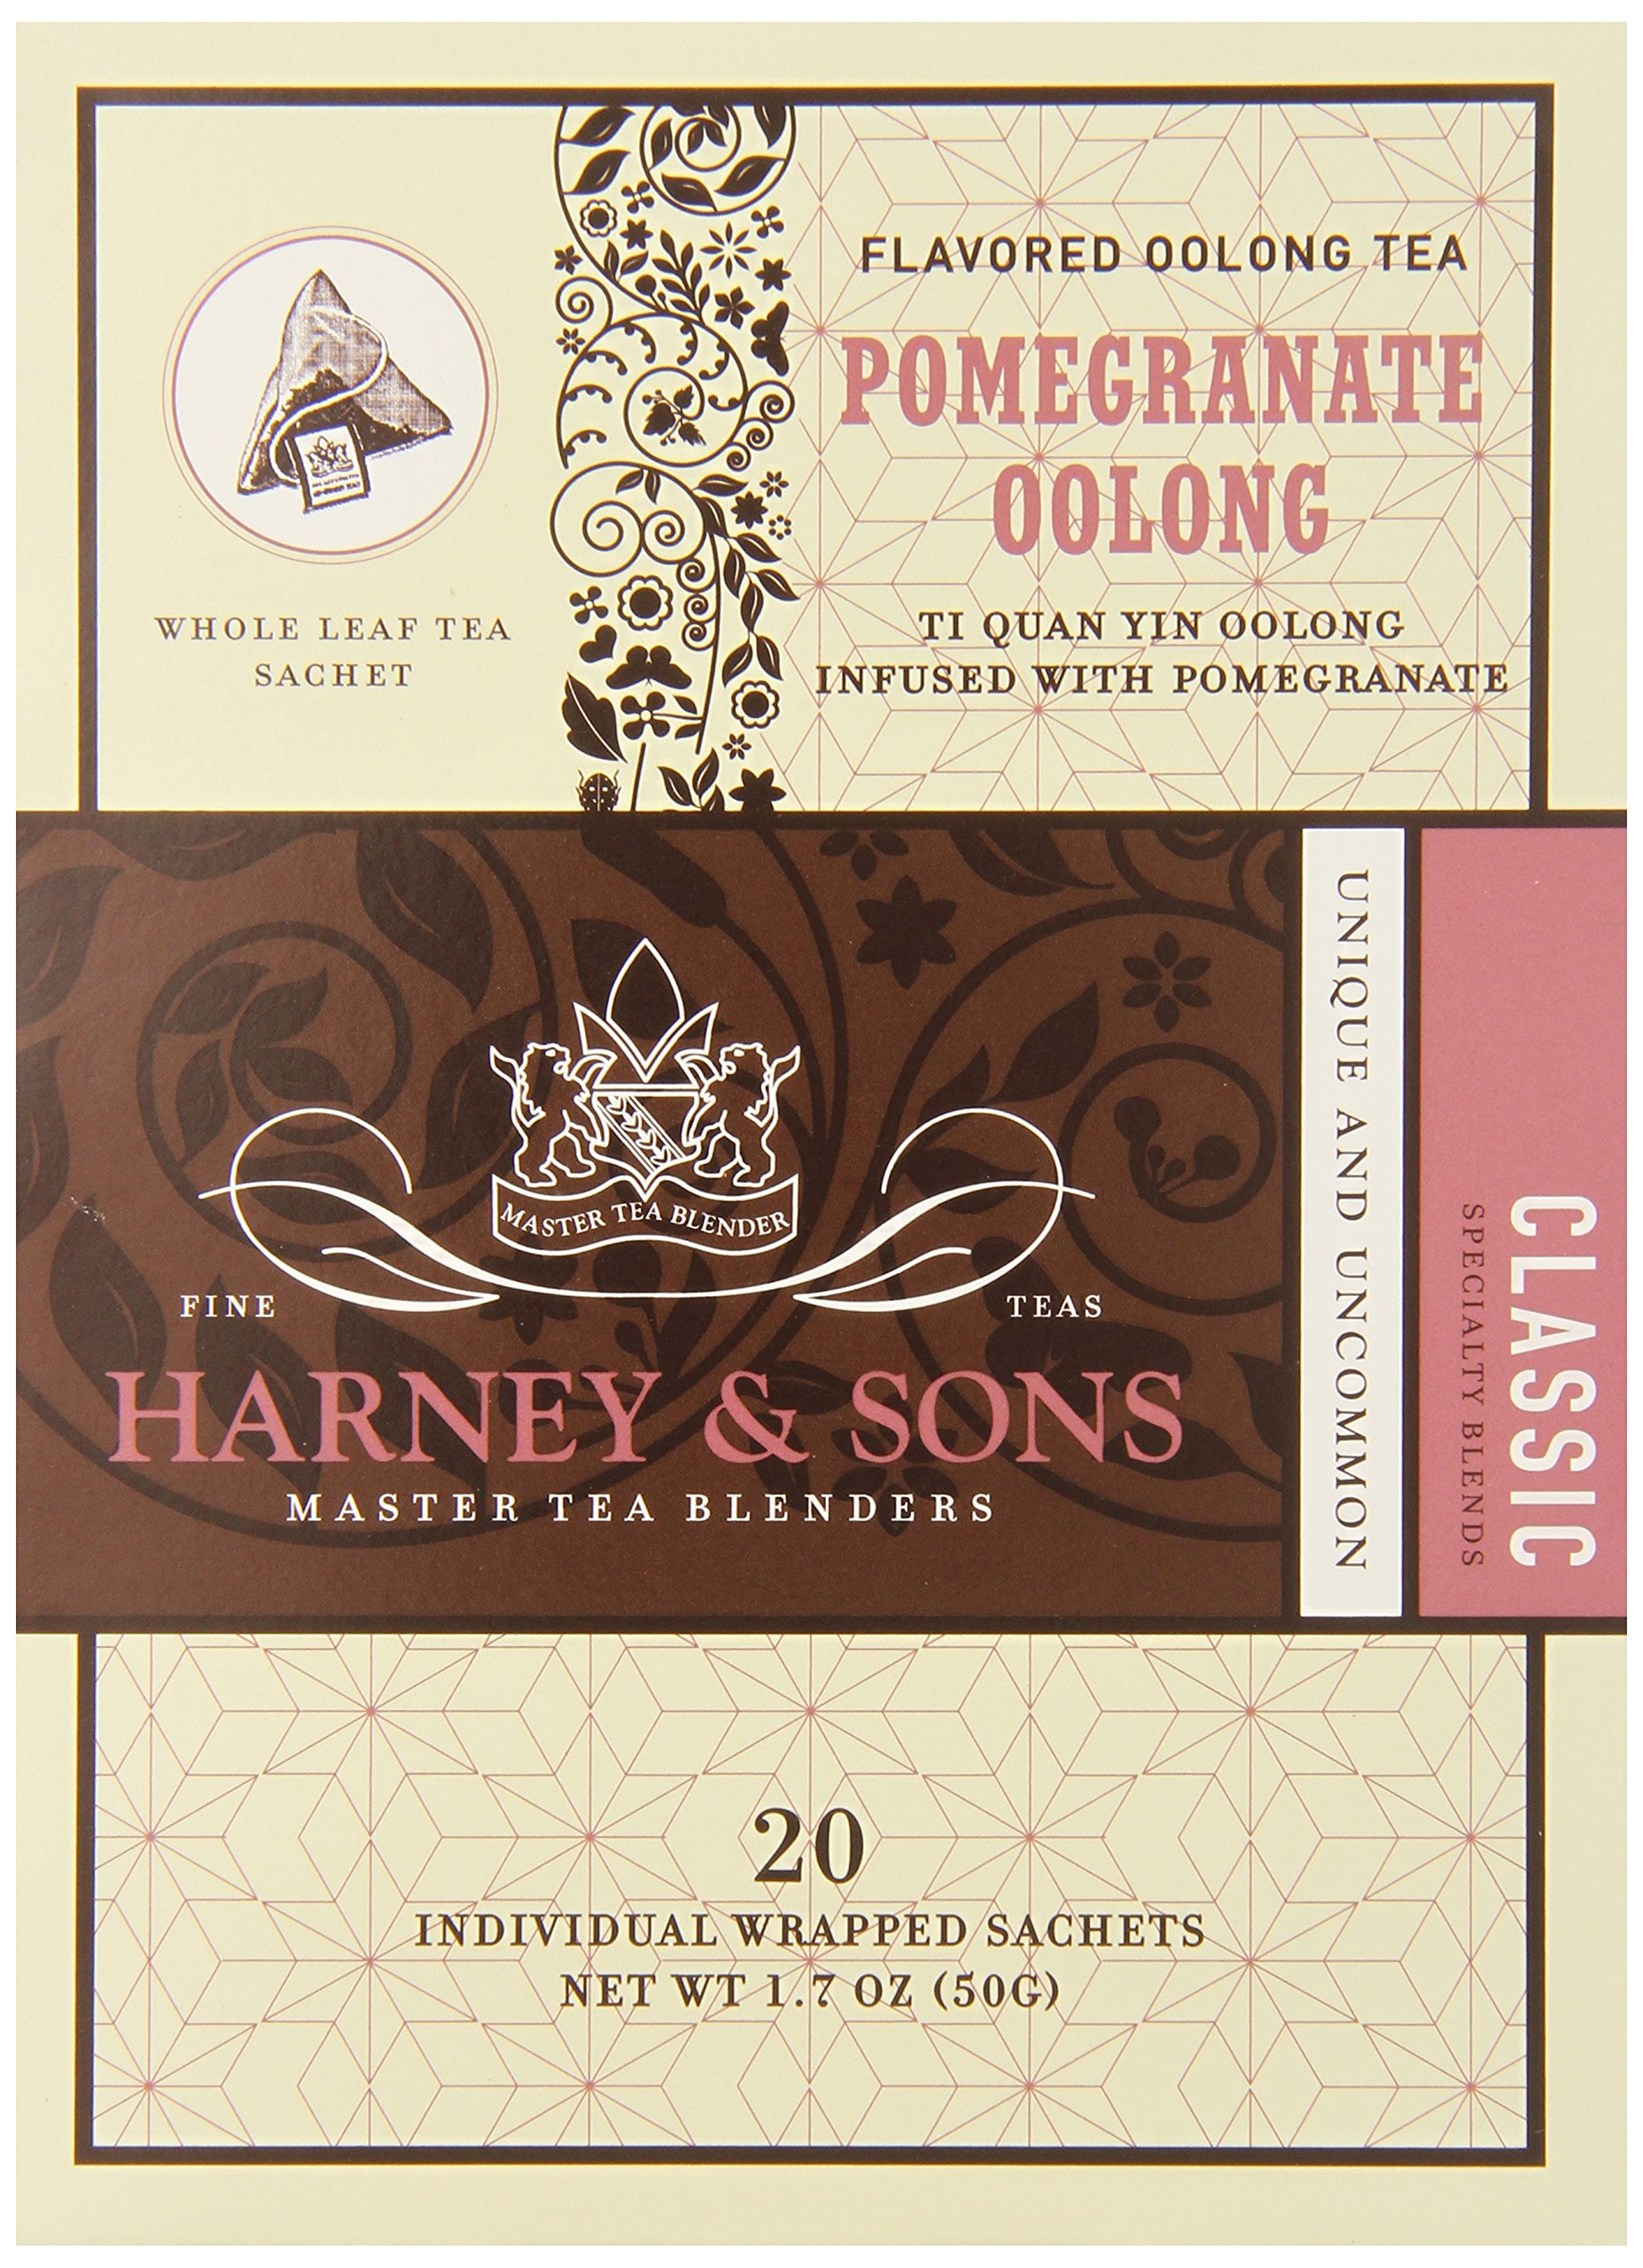 Harney & Sons Oolong Tea, Pomegranate, 1.7 oz, 20 Sachets (Pack of 6)